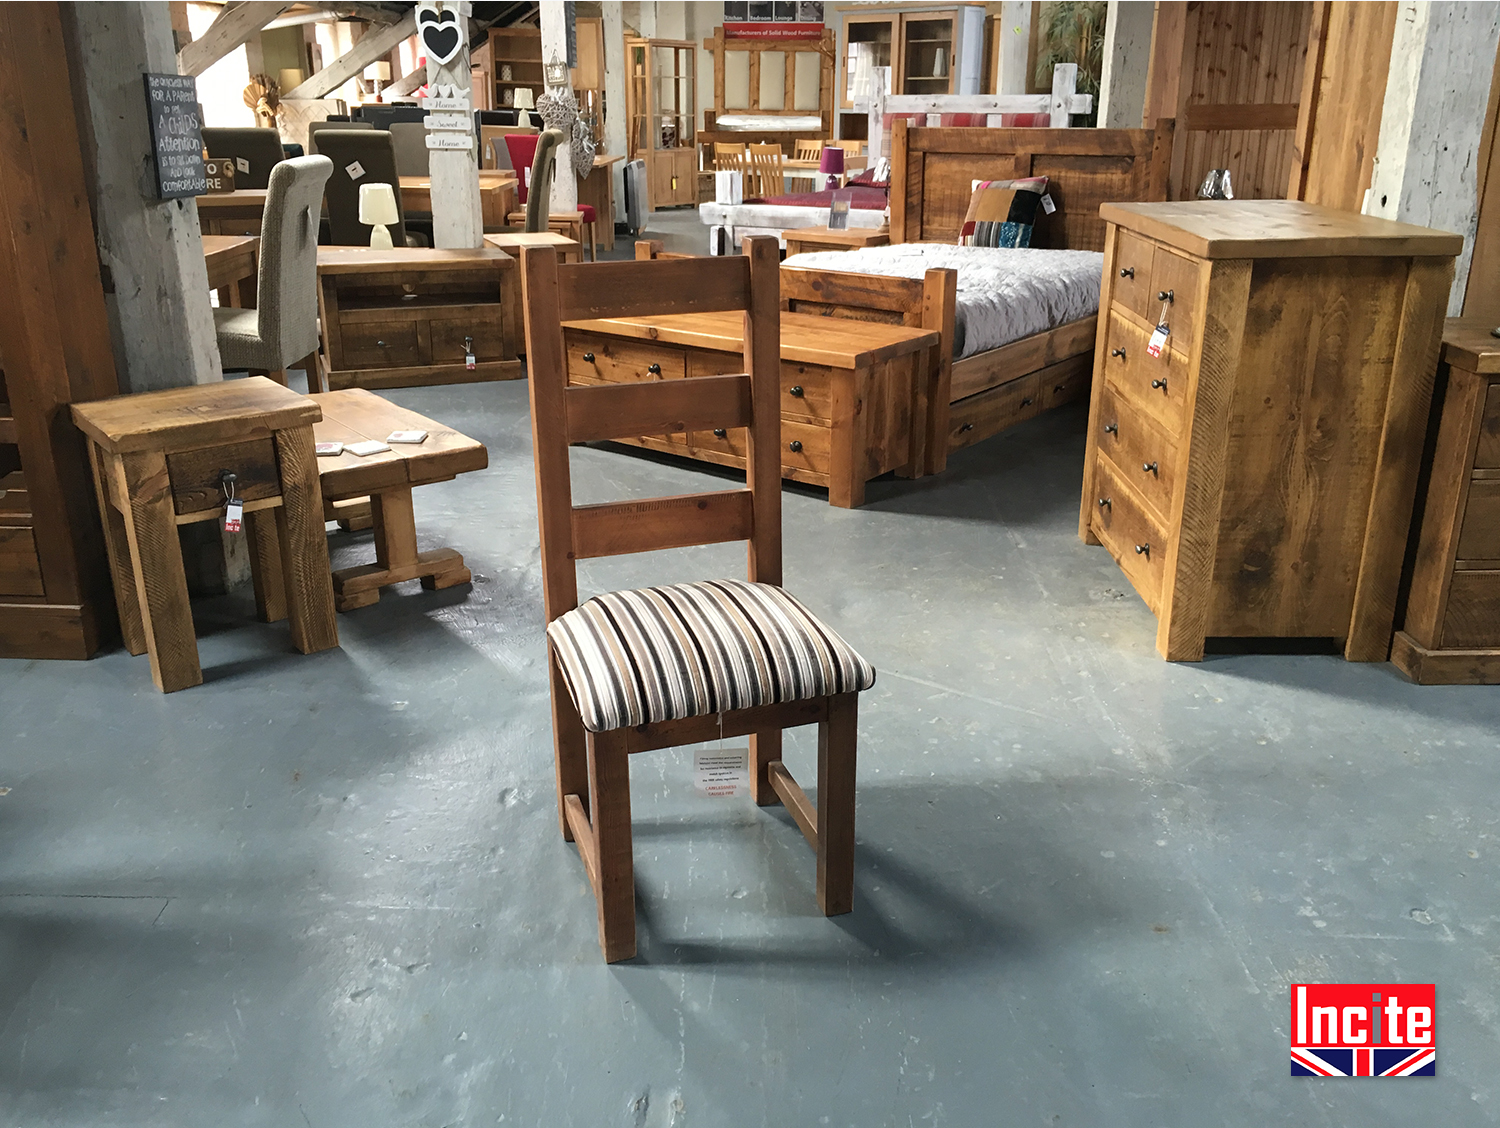 Handcrafted plank pine upholstered chair by incite derby